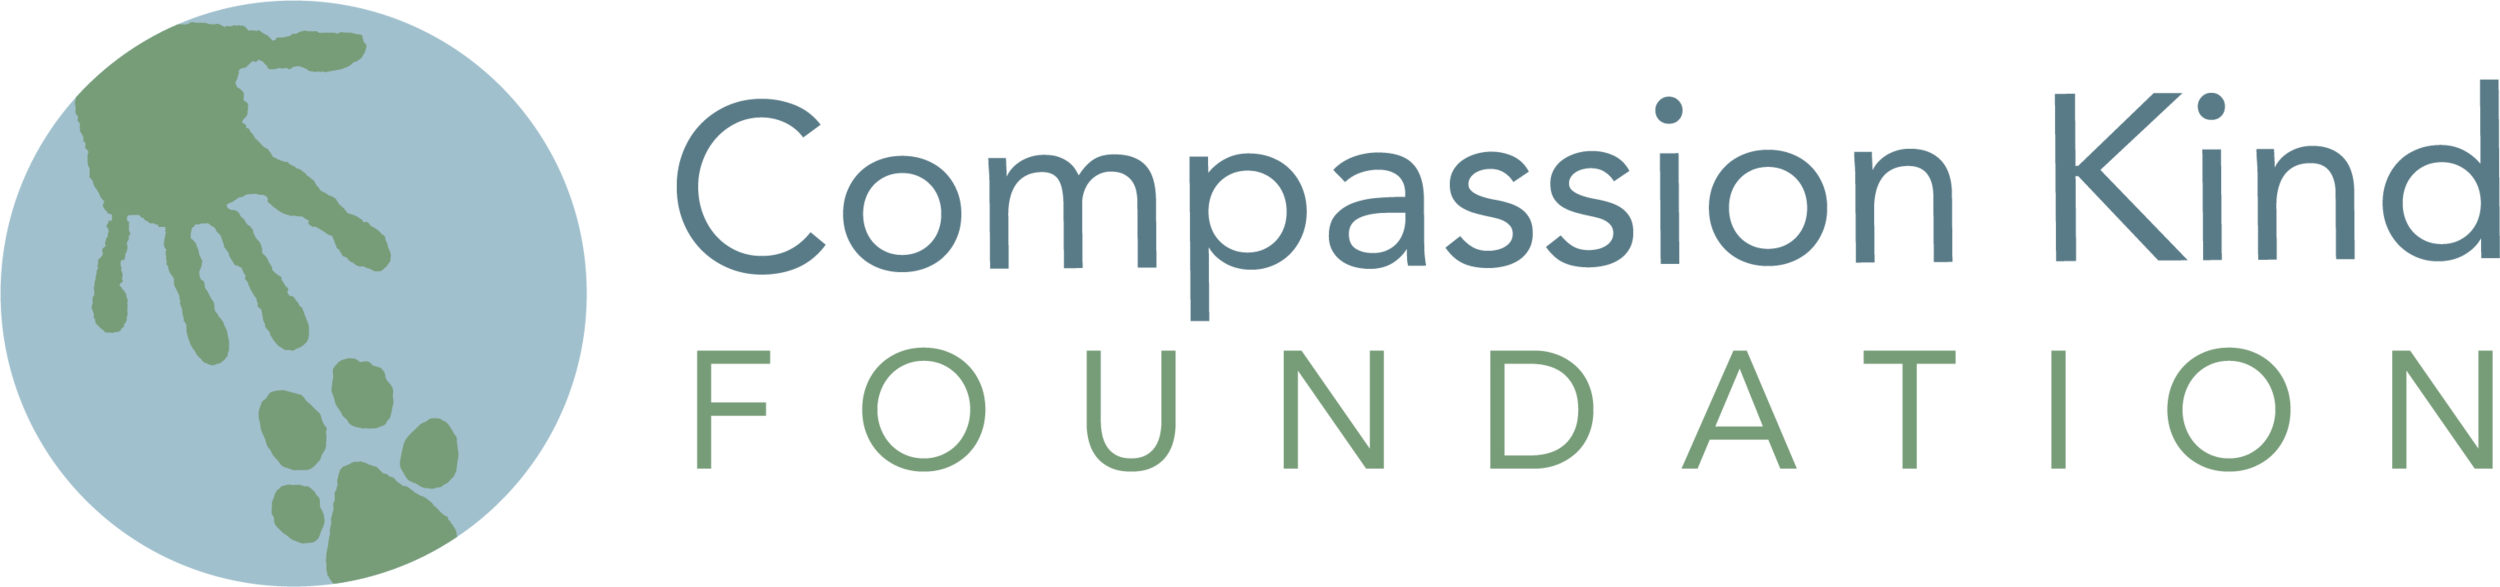 Compassion-Kind_Foundation_Full.png